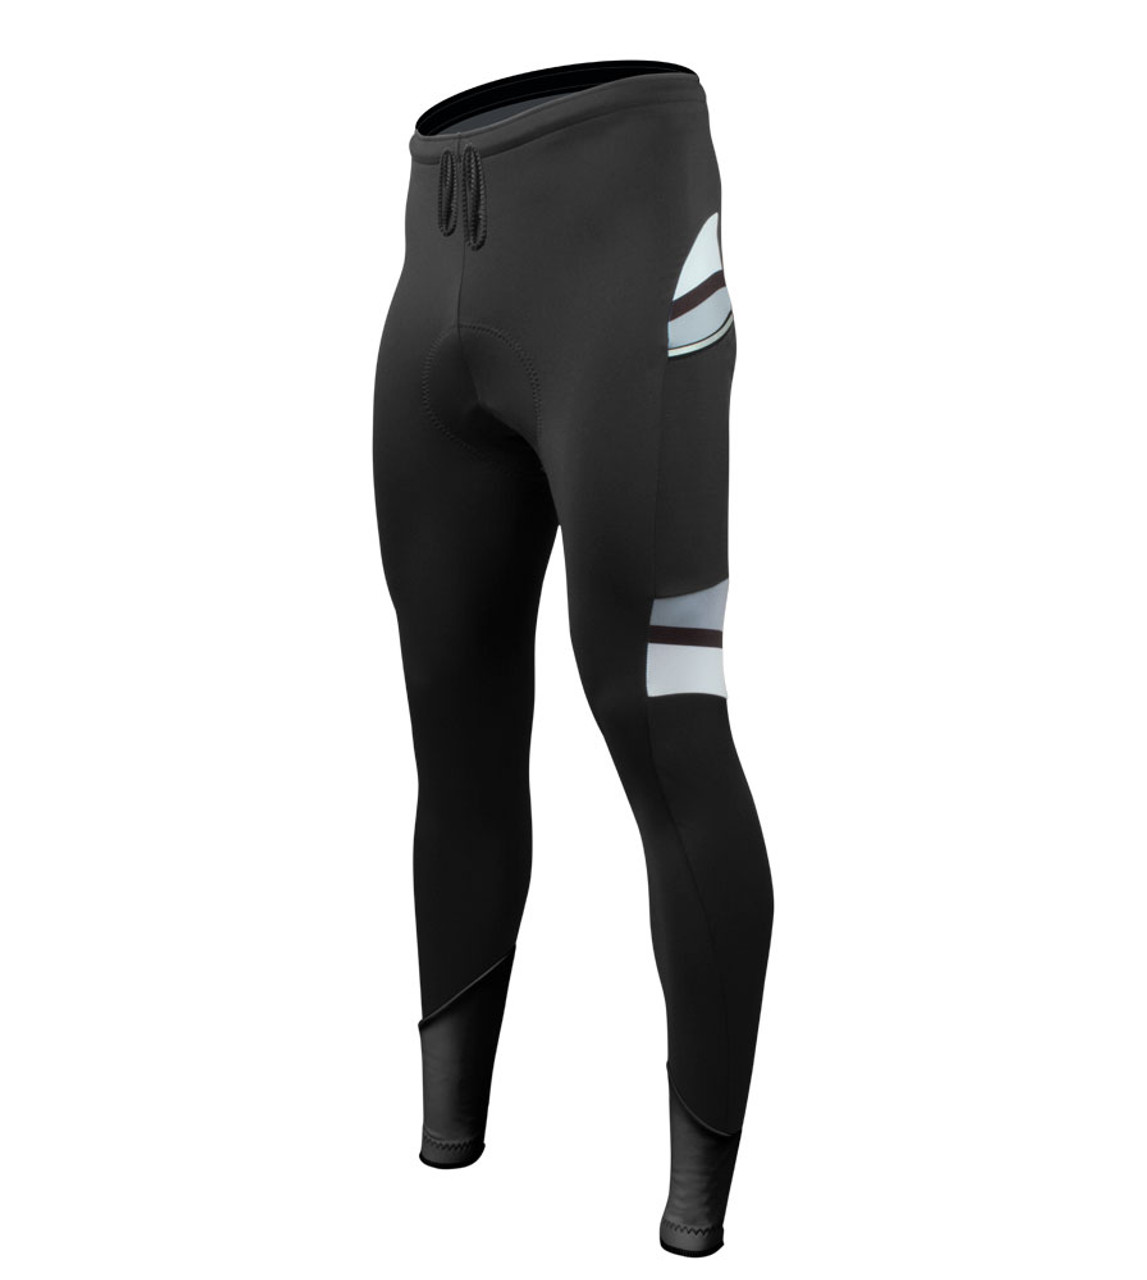 Aero Tech Men/'s All Day Cycling Tights with Pockets and Reflective Made in USA